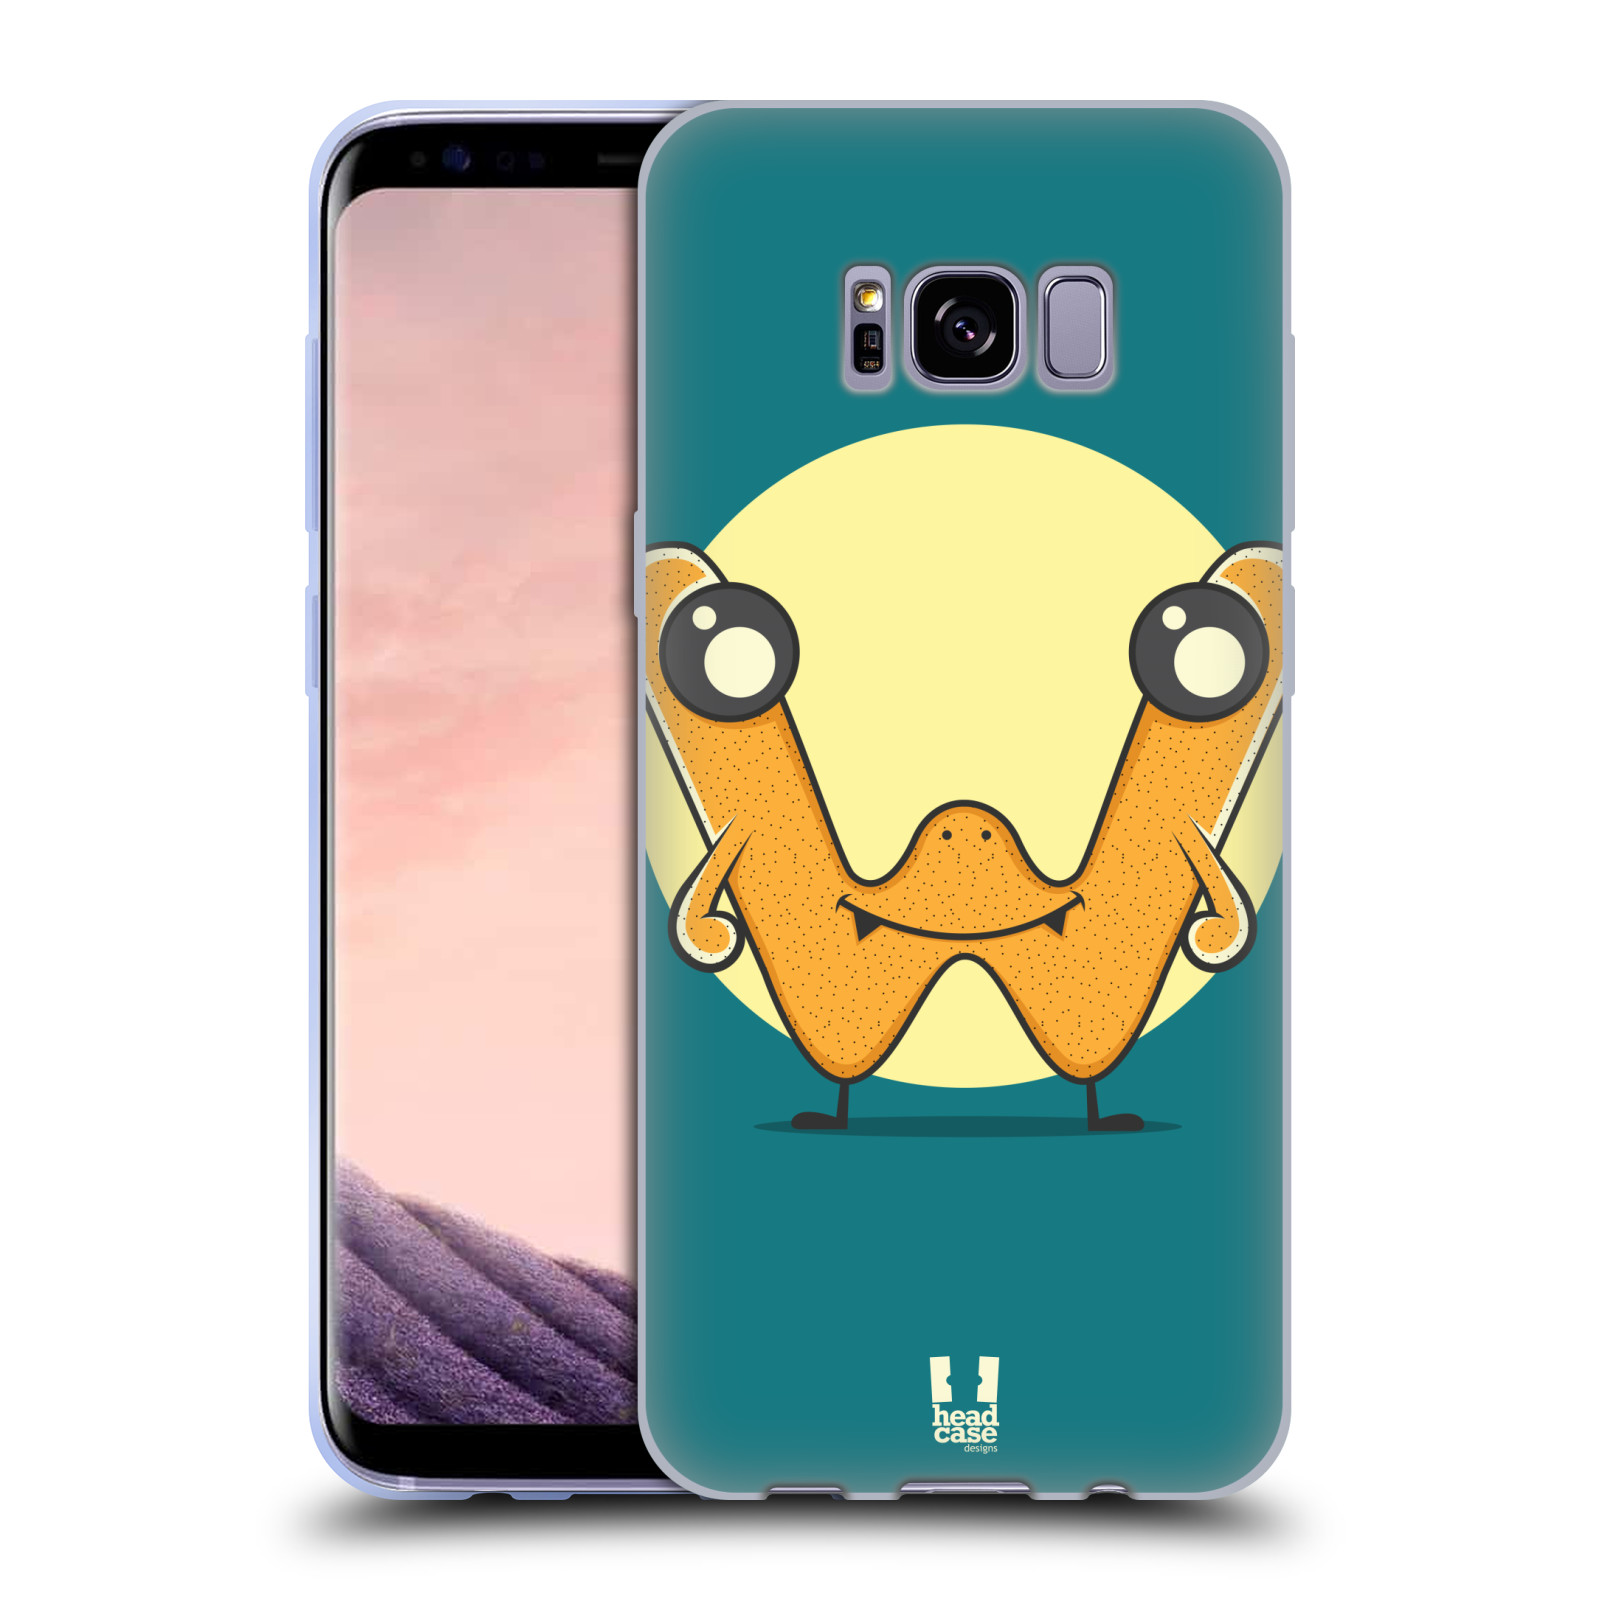 HEAD-CASE-DESIGNS-ALPHABET-MONSTER-SOFT-GEL-CASE-FOR-SAMSUNG-GALAXY-S8-S8-PLUS